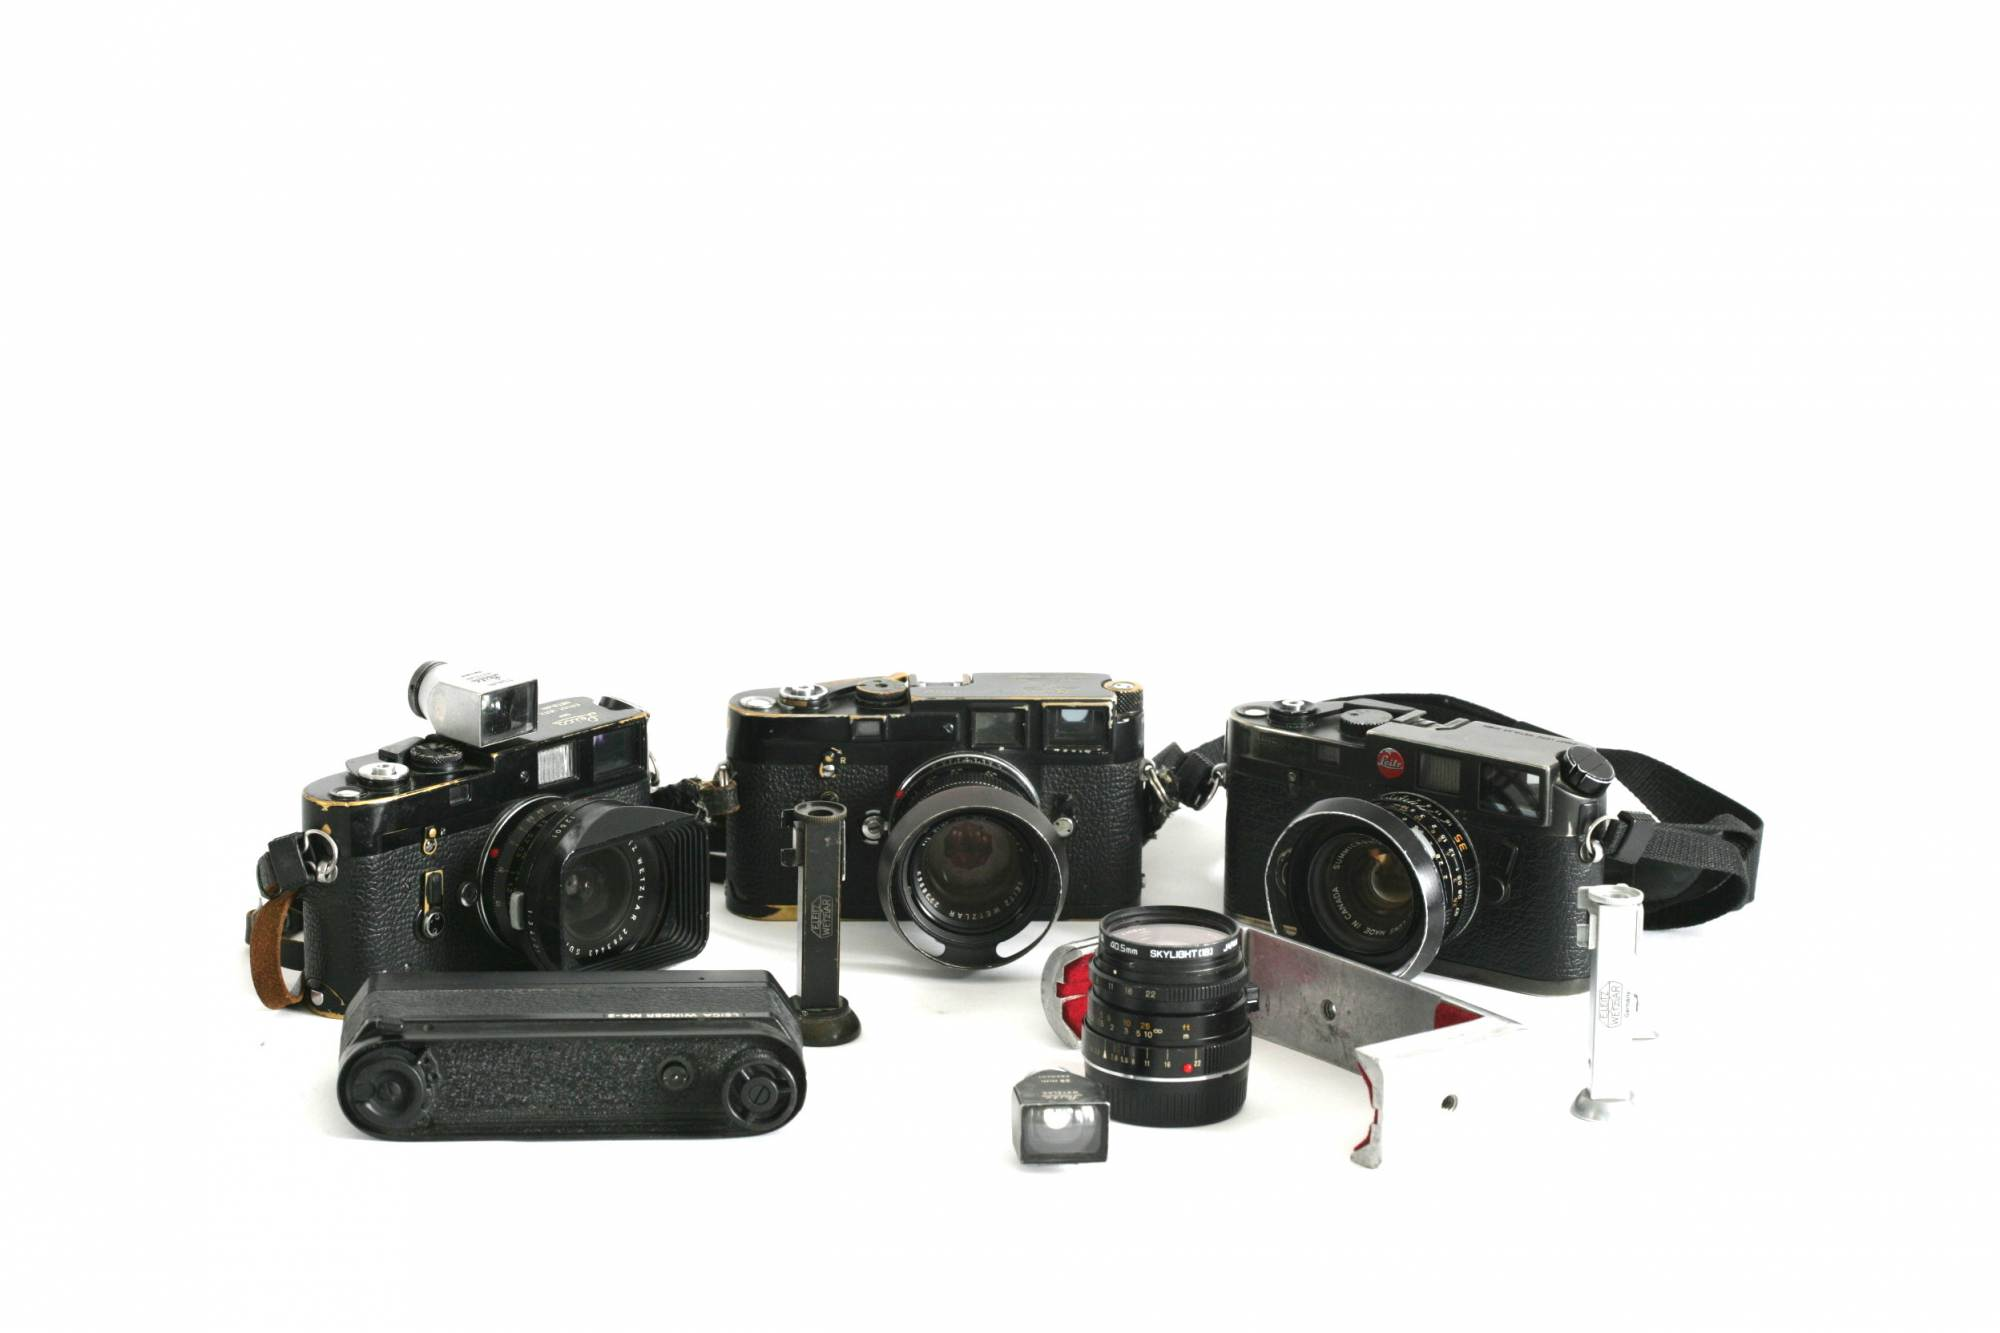 Entire Leica kit. £450 per day.